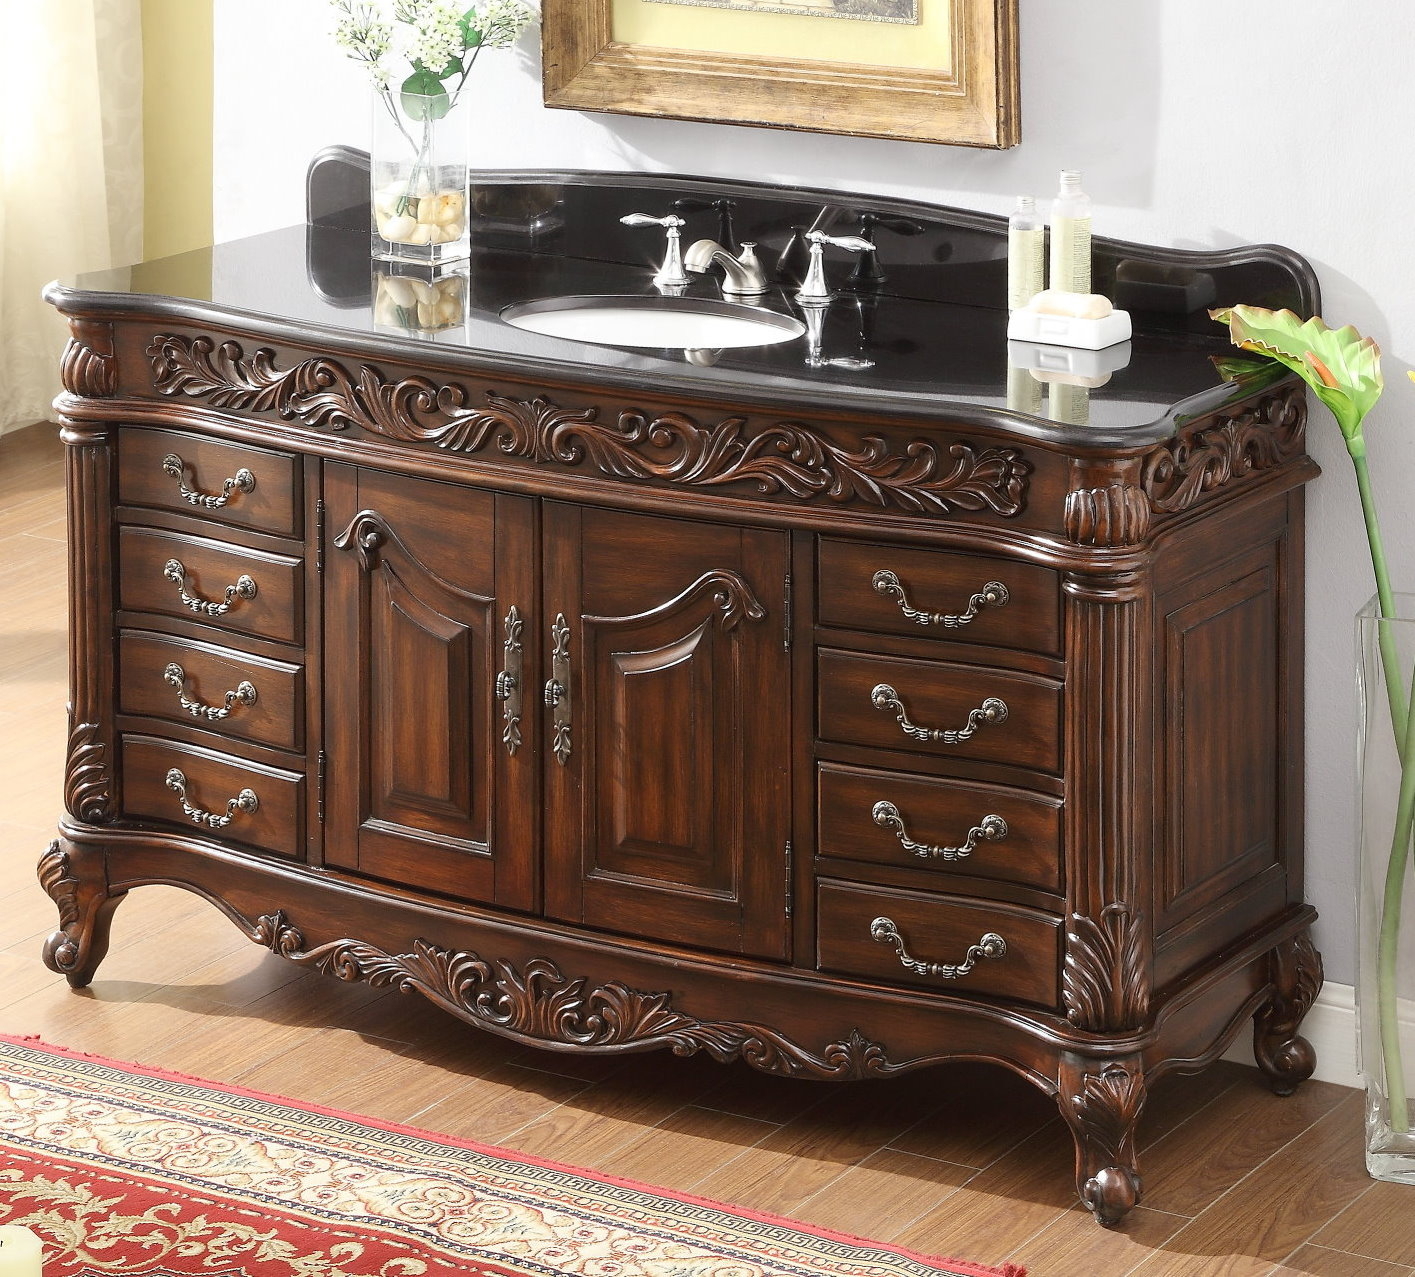 60 inch Bathroom Vanity Traditional Rich Cherry Cabinet